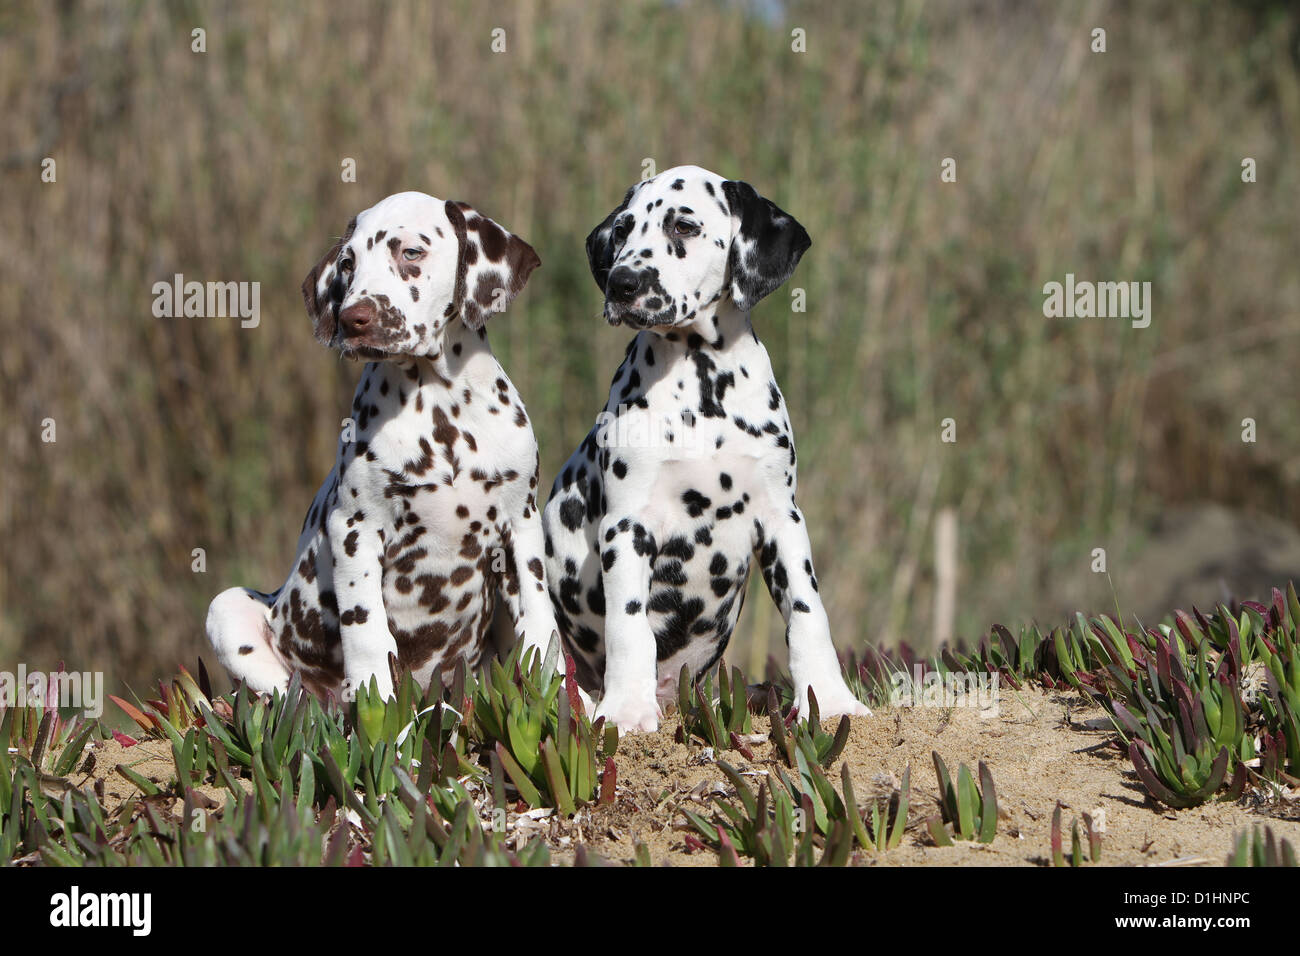 Dog Dalmatian / Dalmatiner / Dalmatien two puppies different colors sitting on the sand - Stock Image